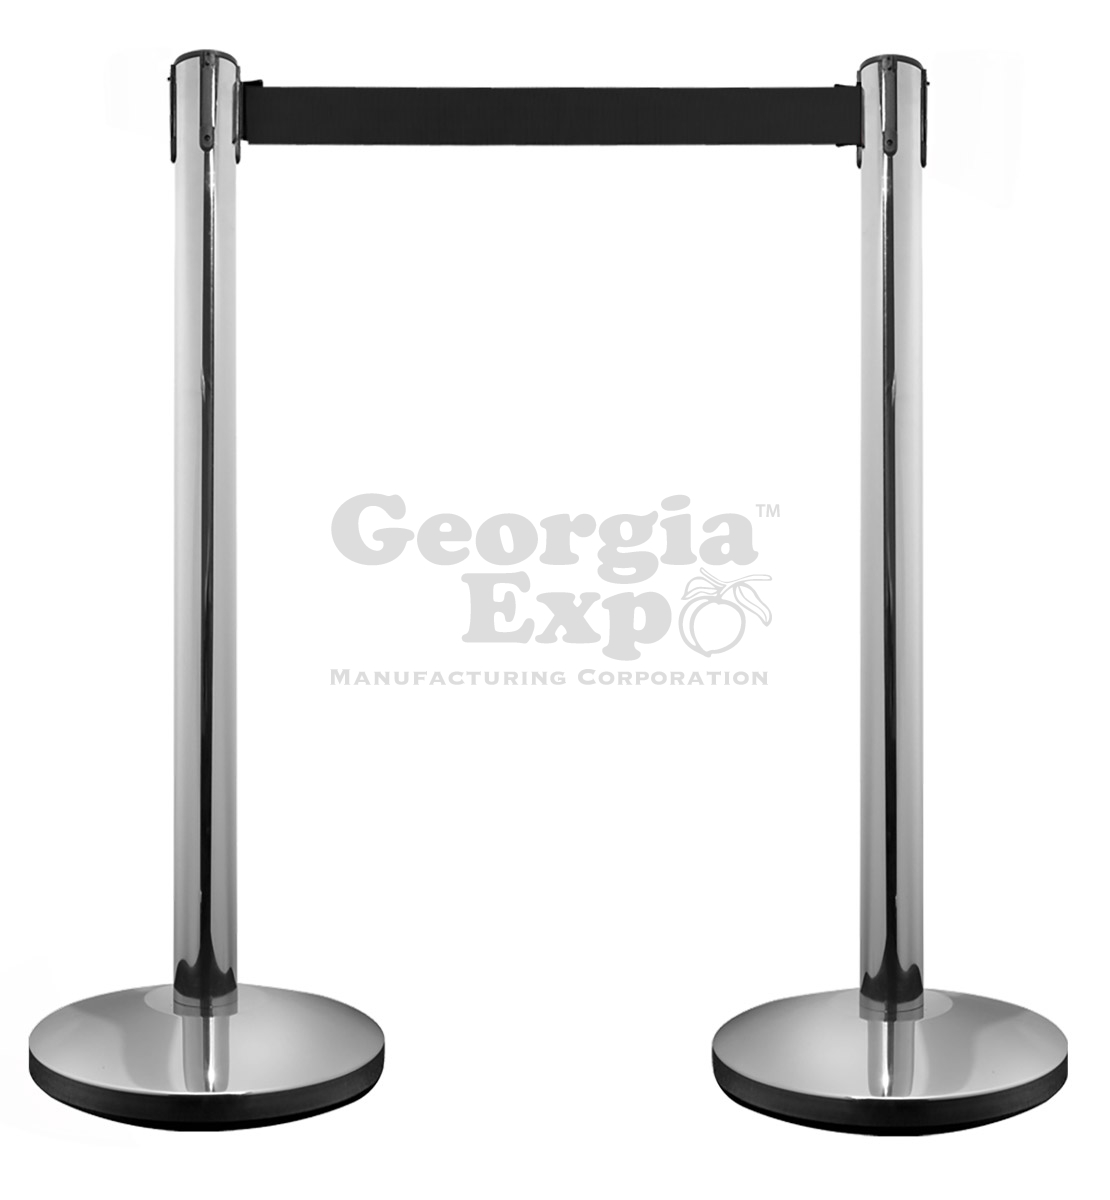 Awe Inspiring Retractable Belt Barrier Stanchions Facilities Party Rental Stanchions Worship Church Equipment Georgia Expo Home Interior And Landscaping Pimpapssignezvosmurscom